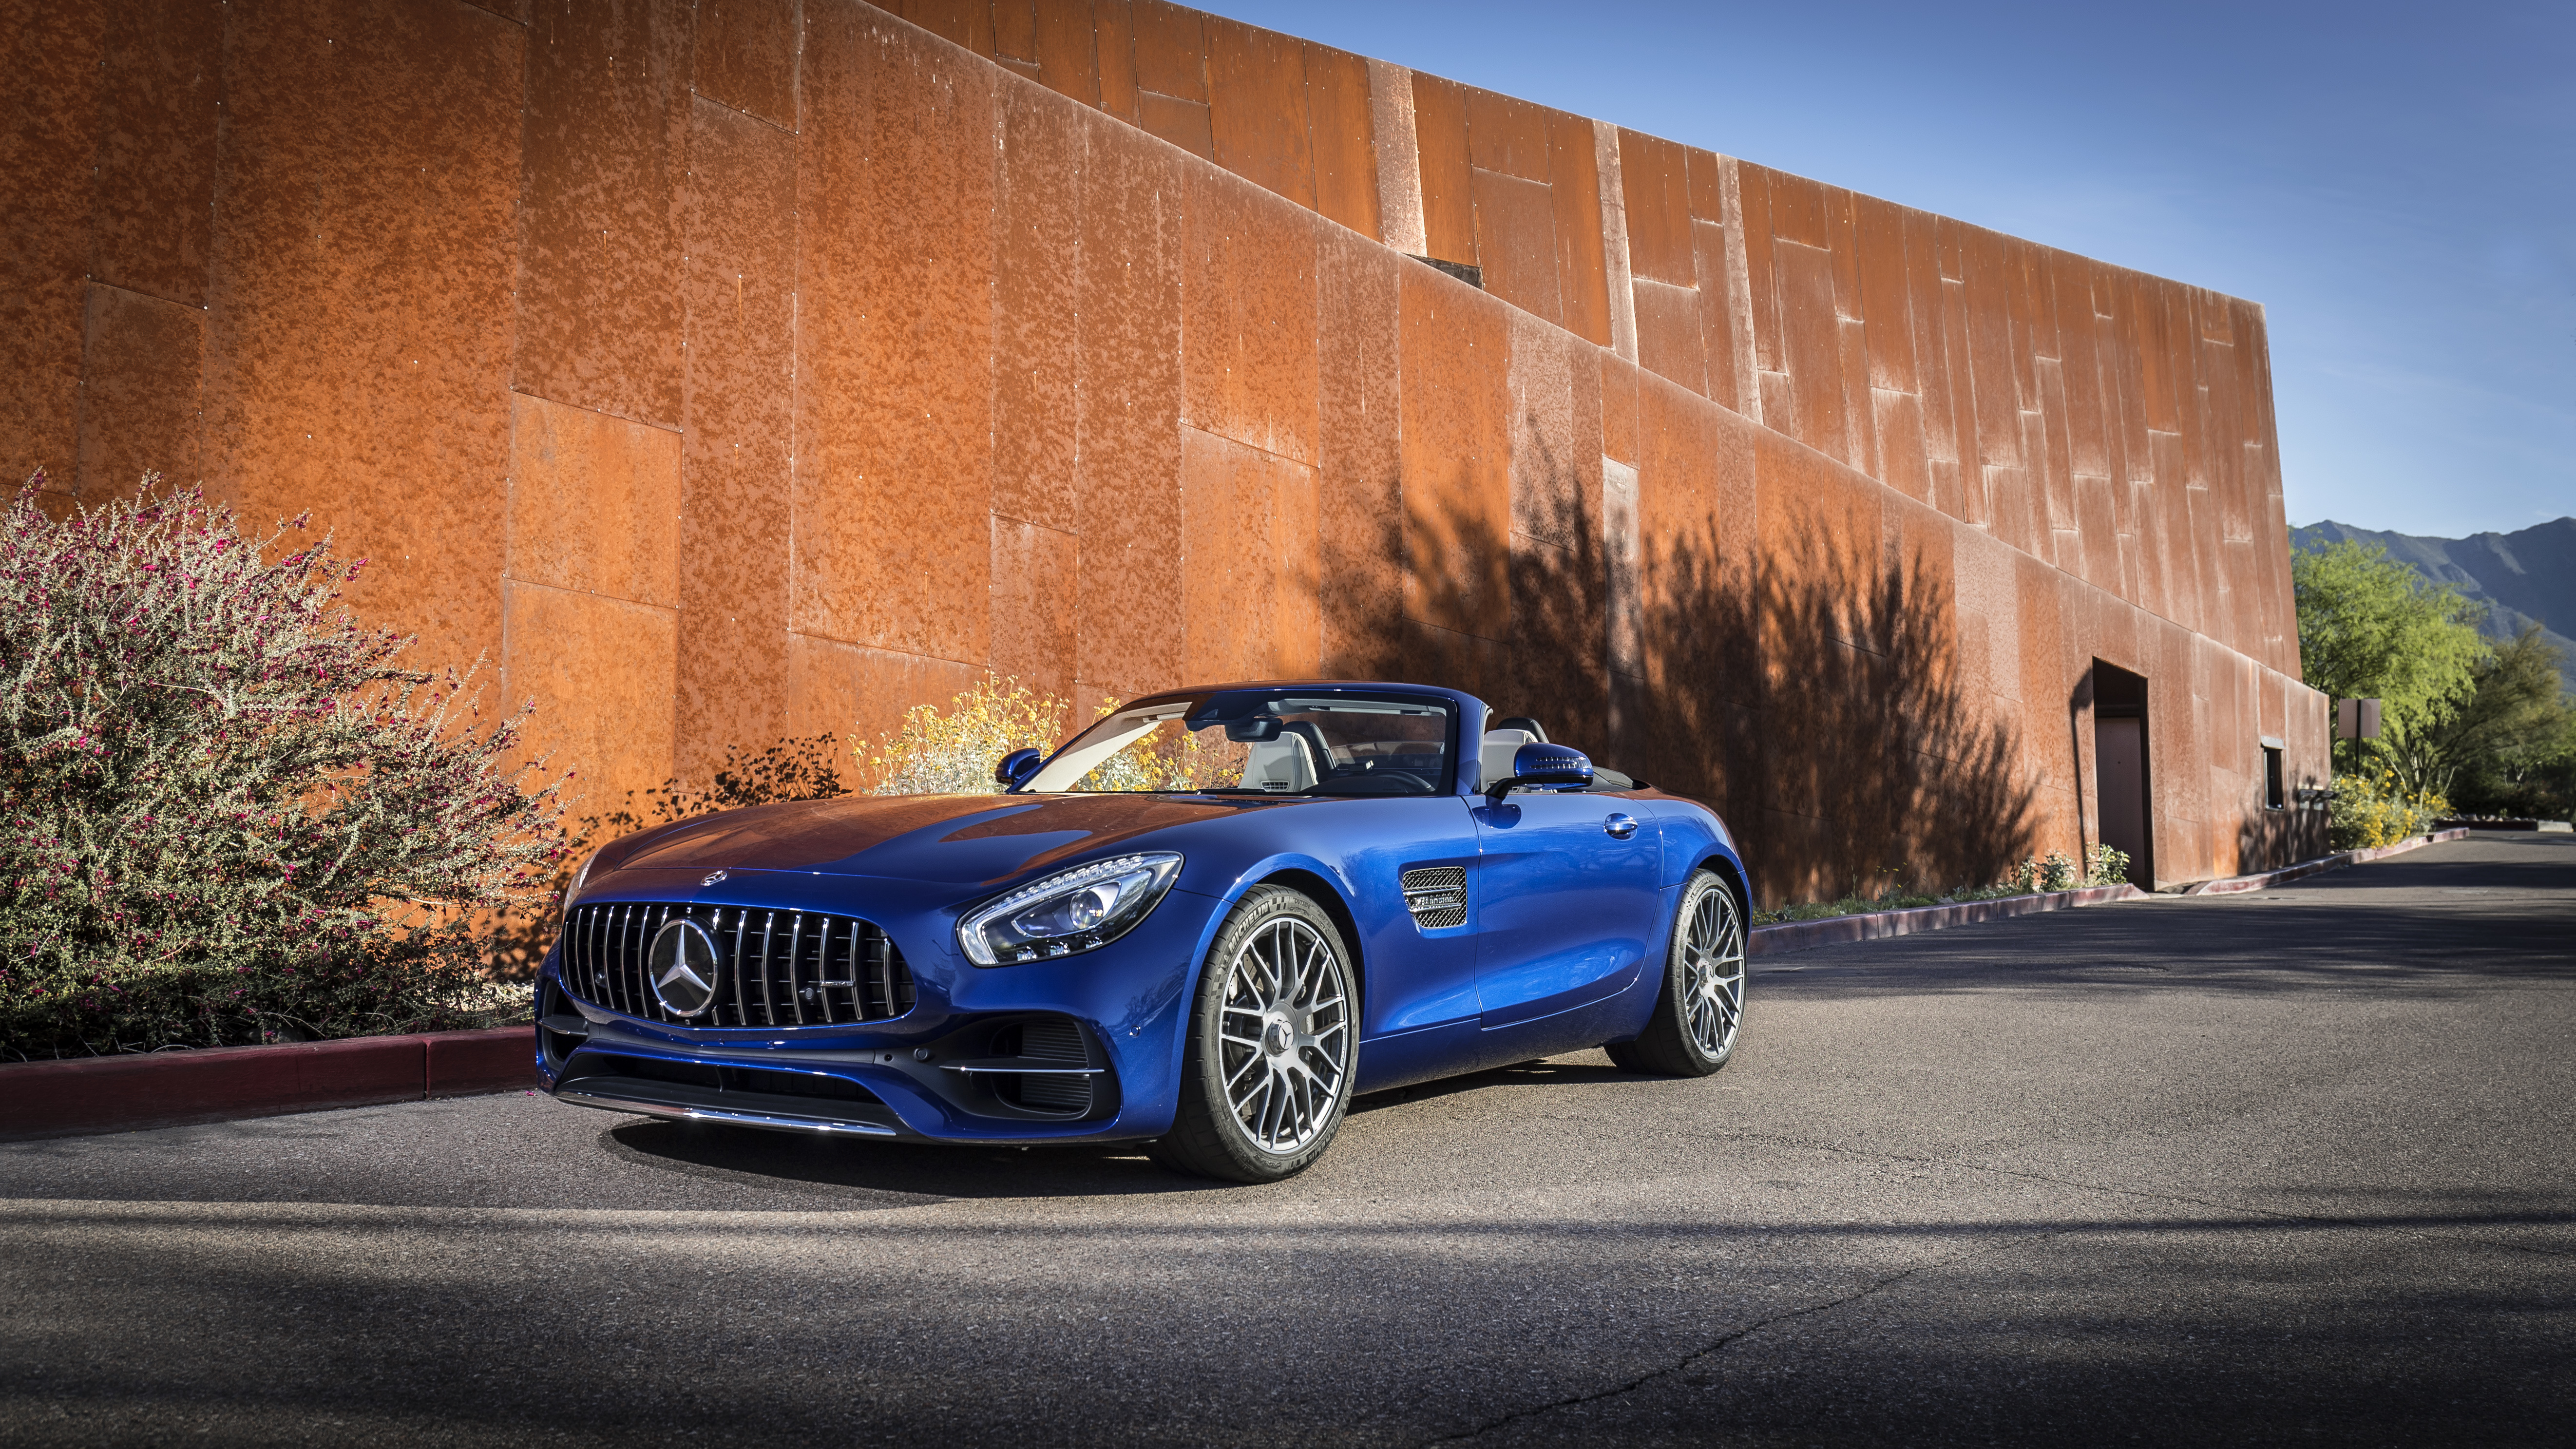 The AMG GT C Roadster